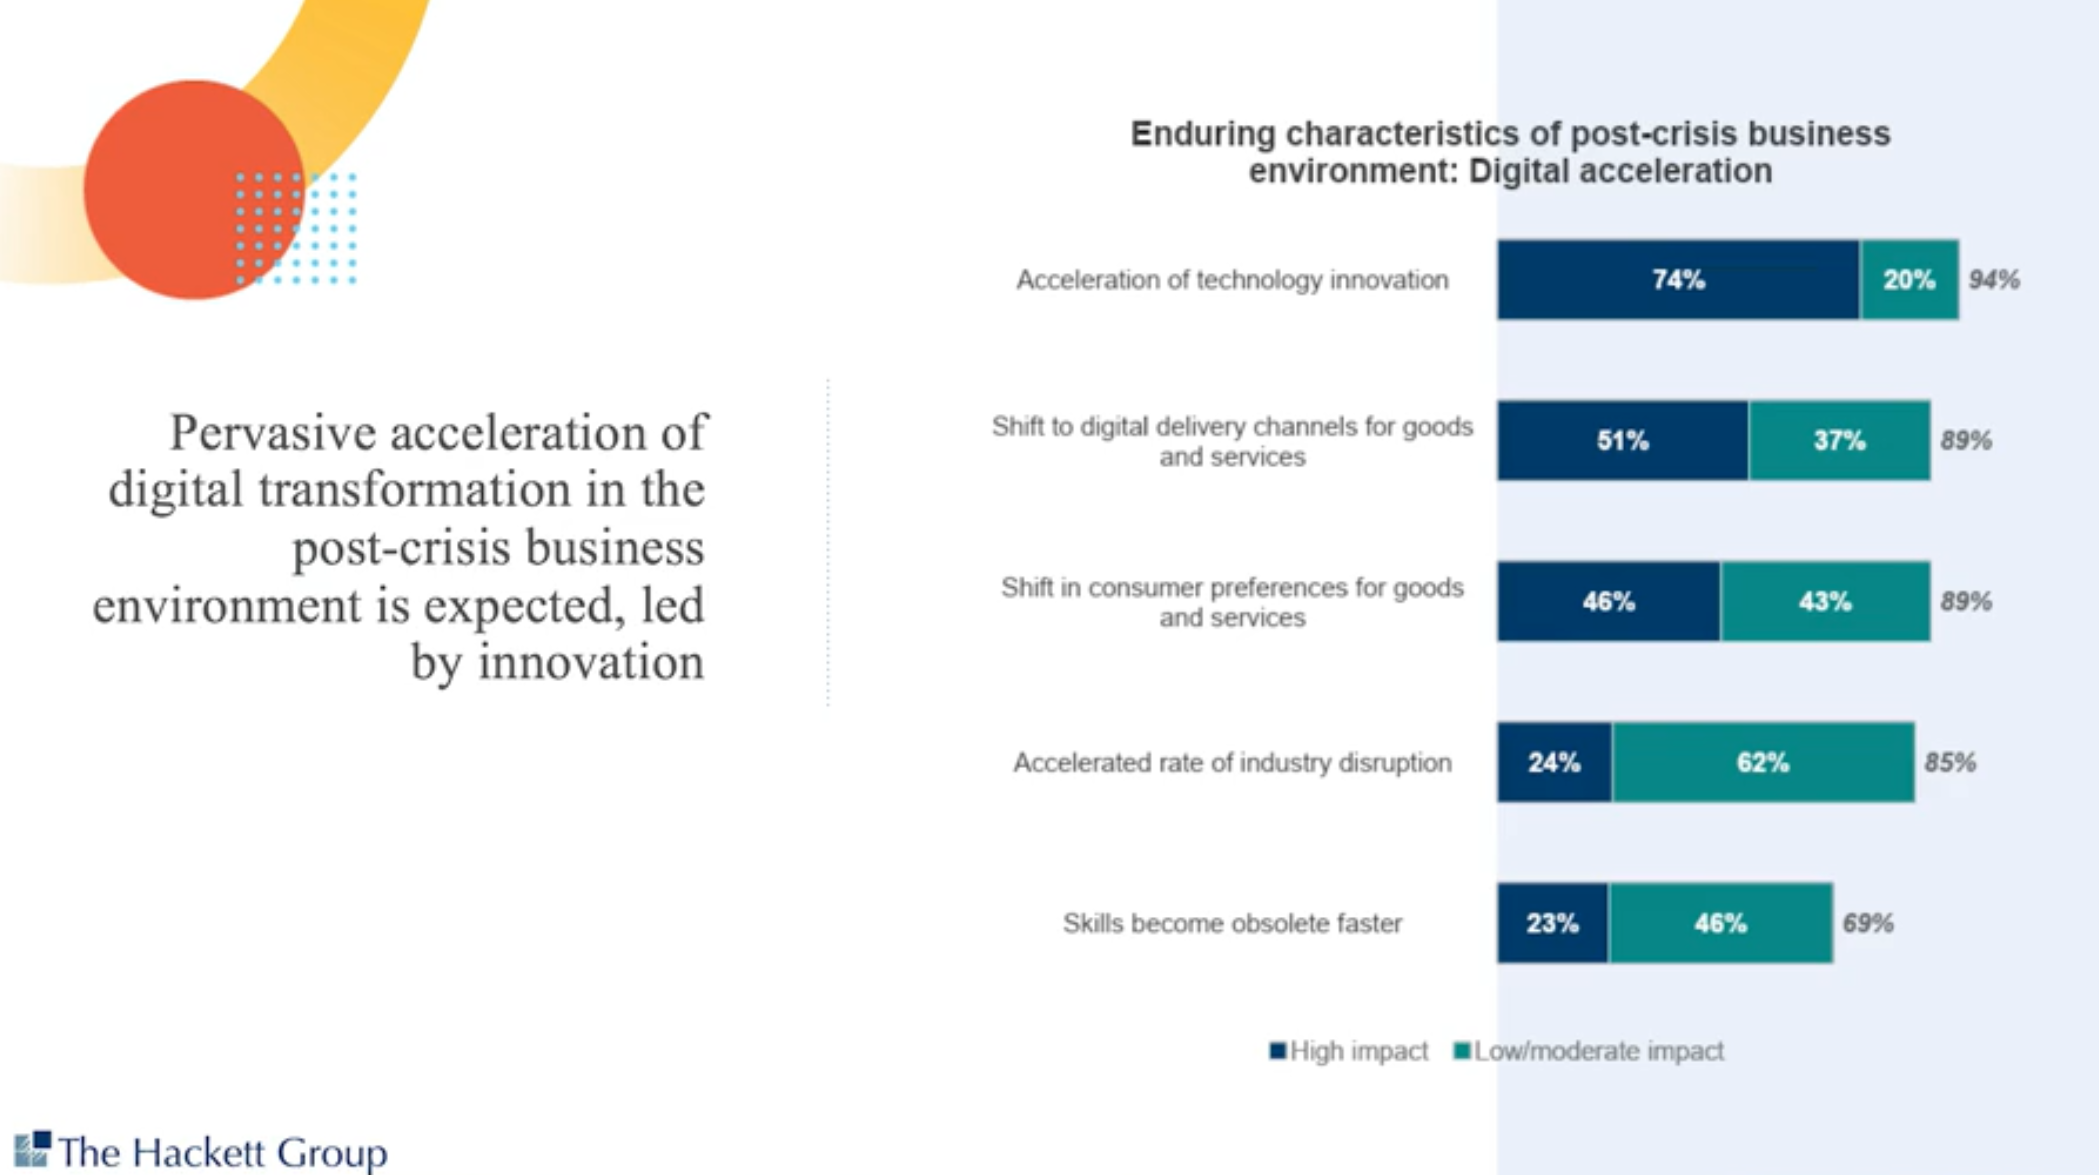 Digital acceleration and transformation of companies